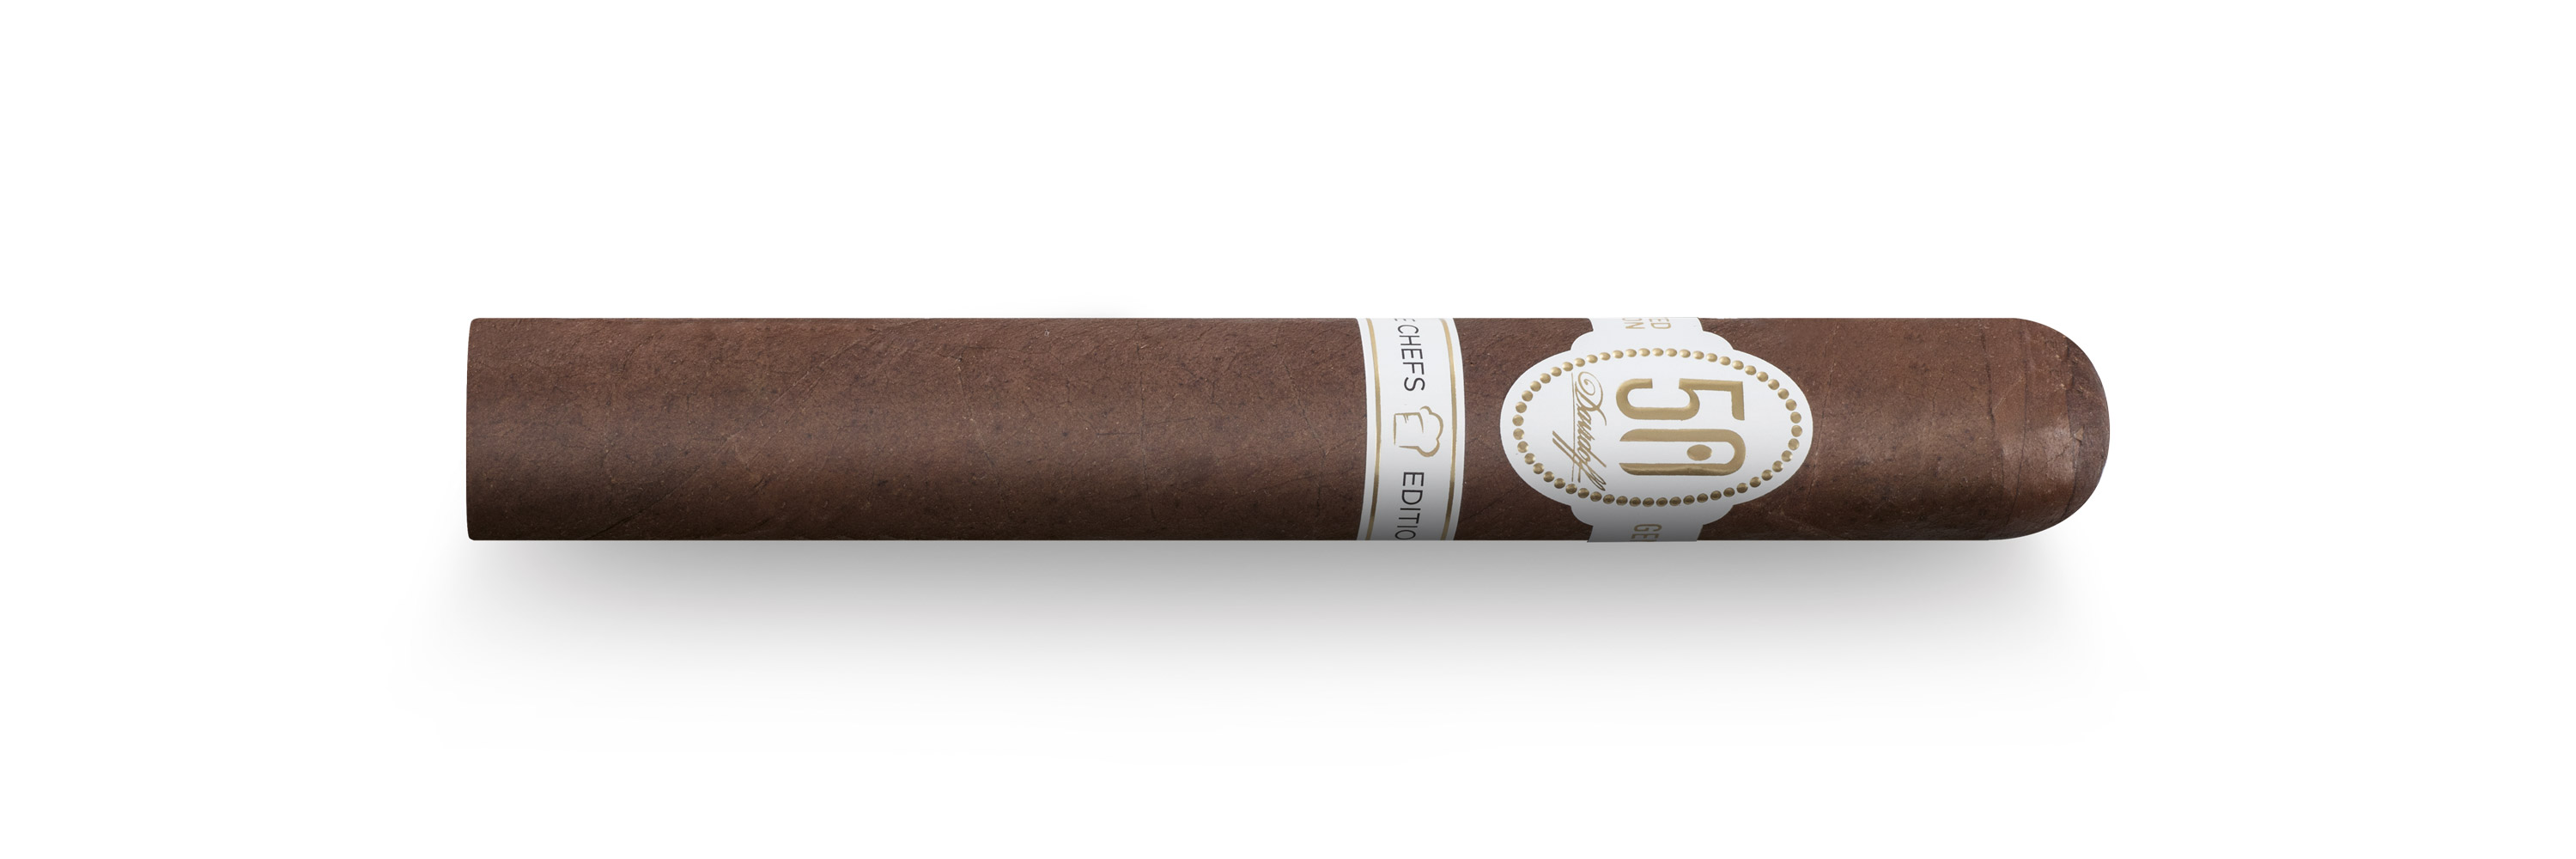 Davidoff releases a Michelin-starred cigar for their 50th anniversary